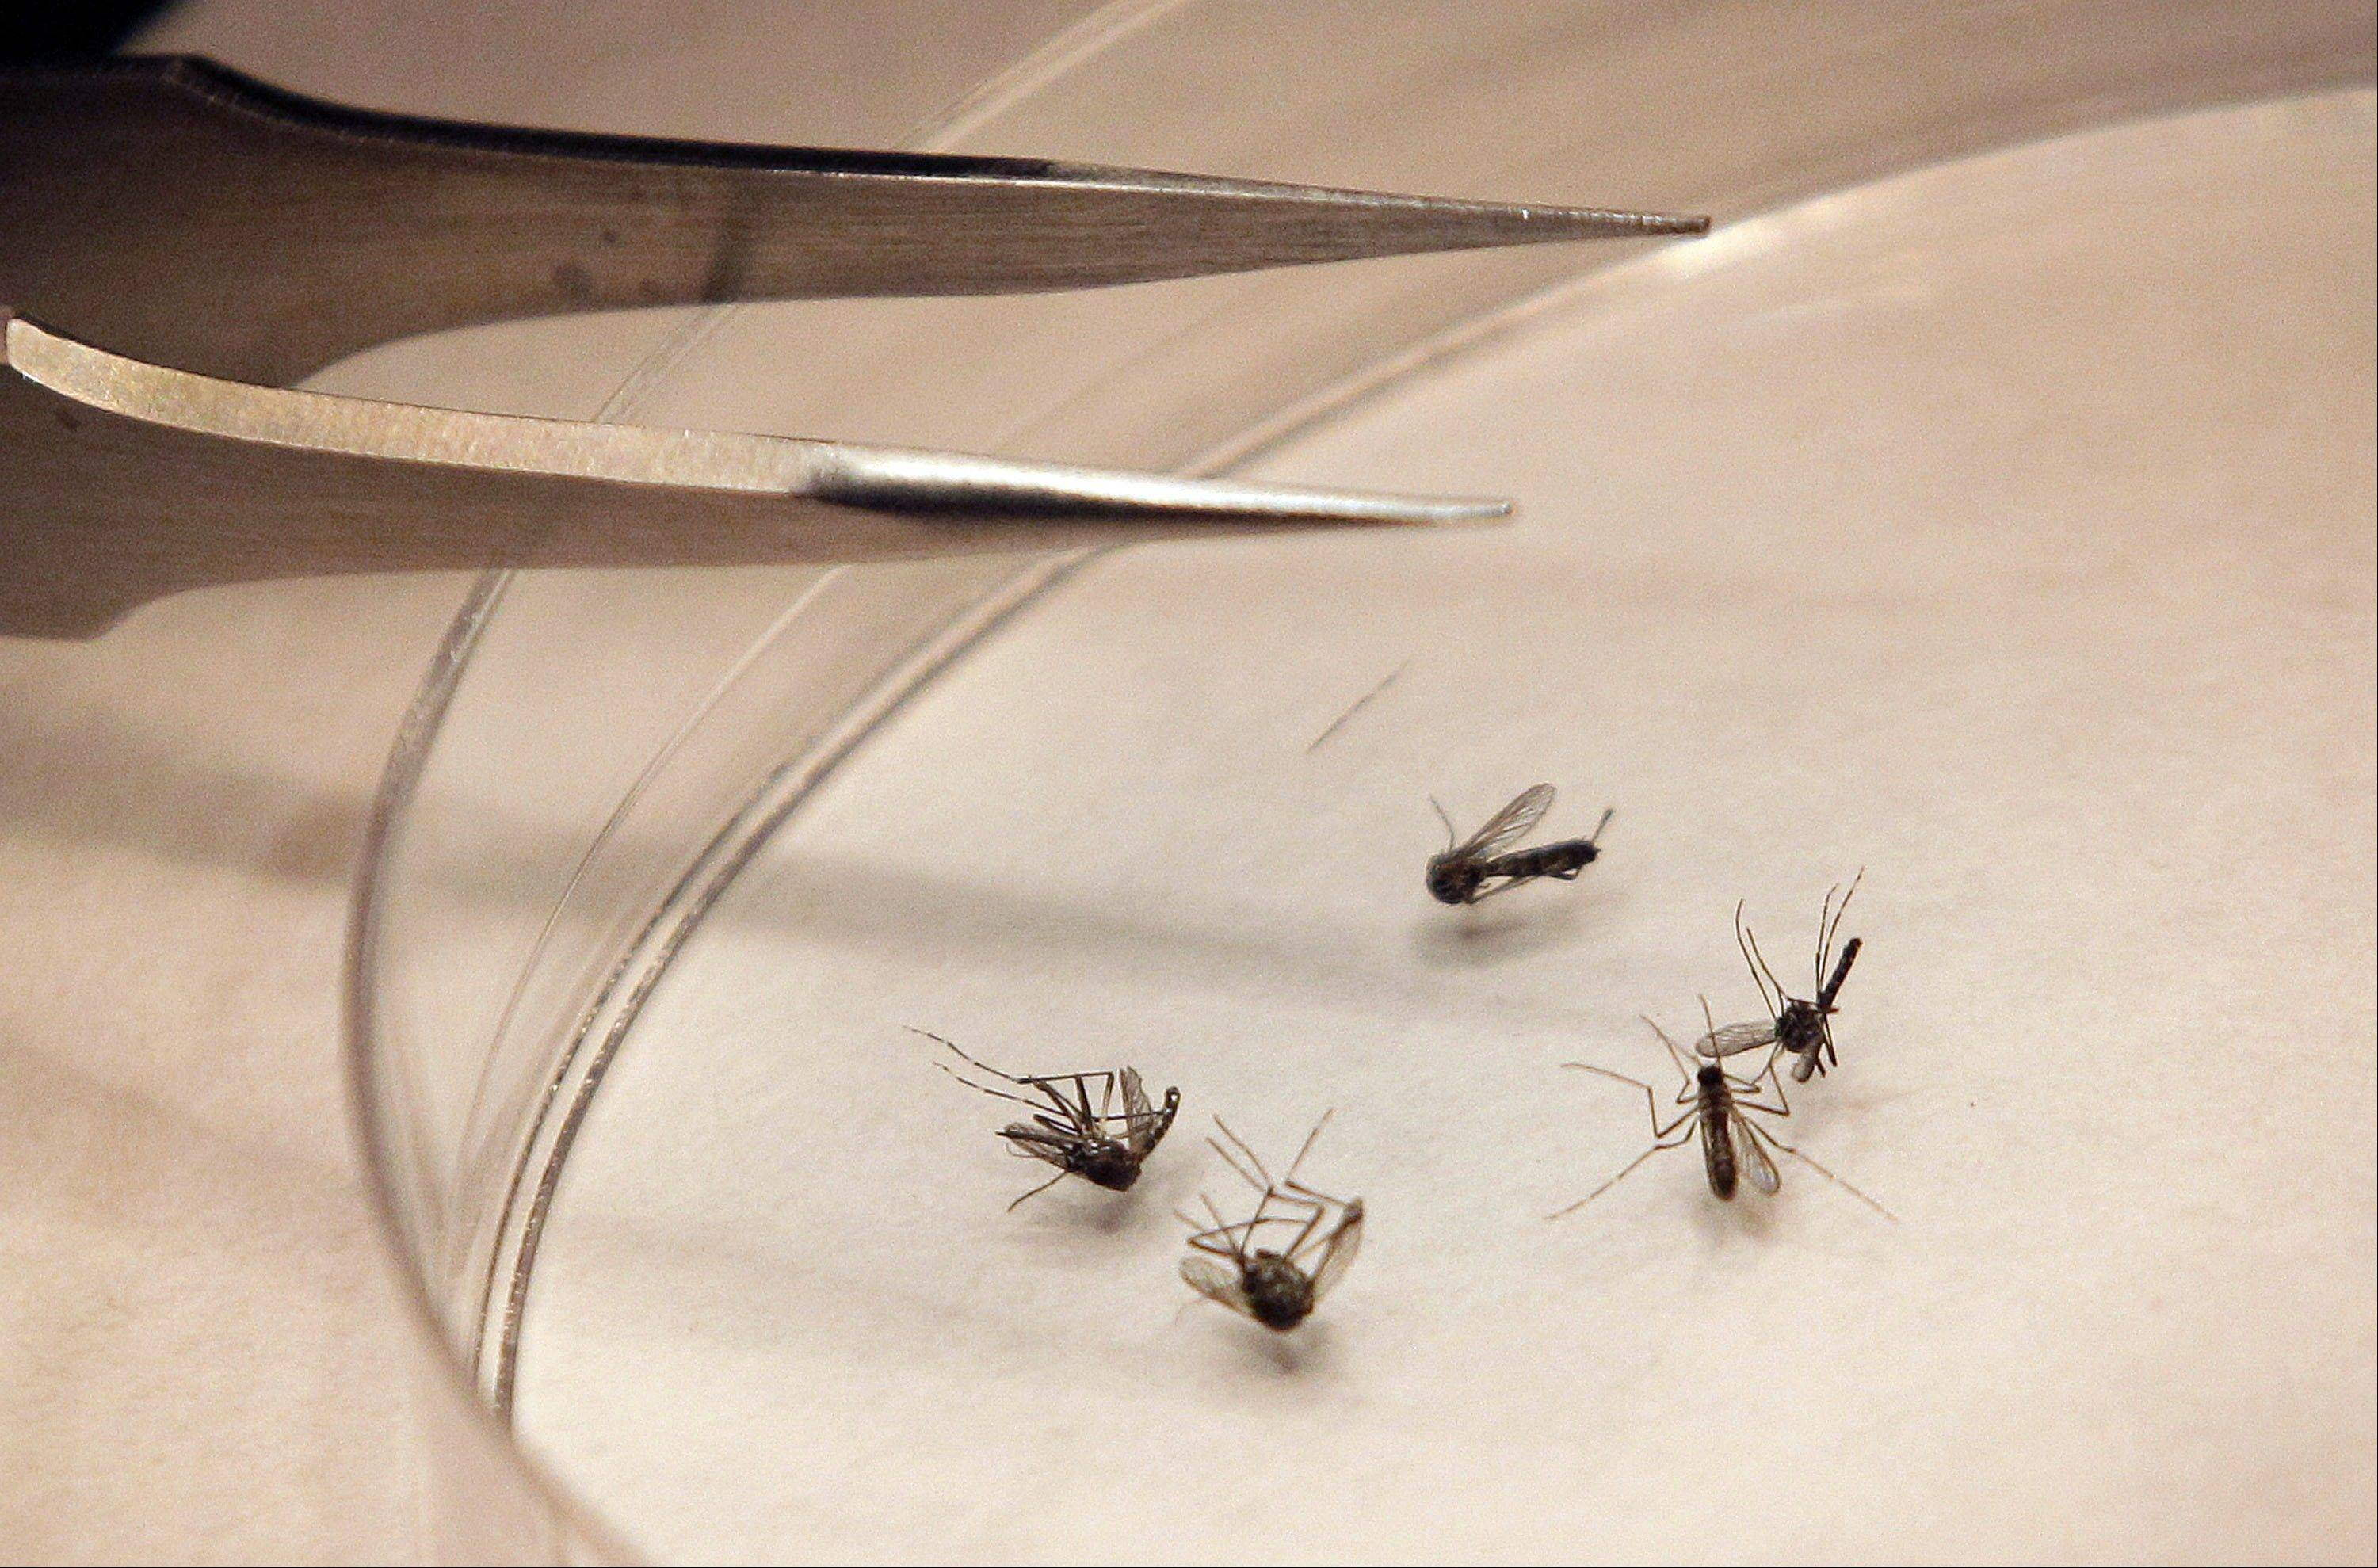 CDC: West Nile outbreak one of largest in US